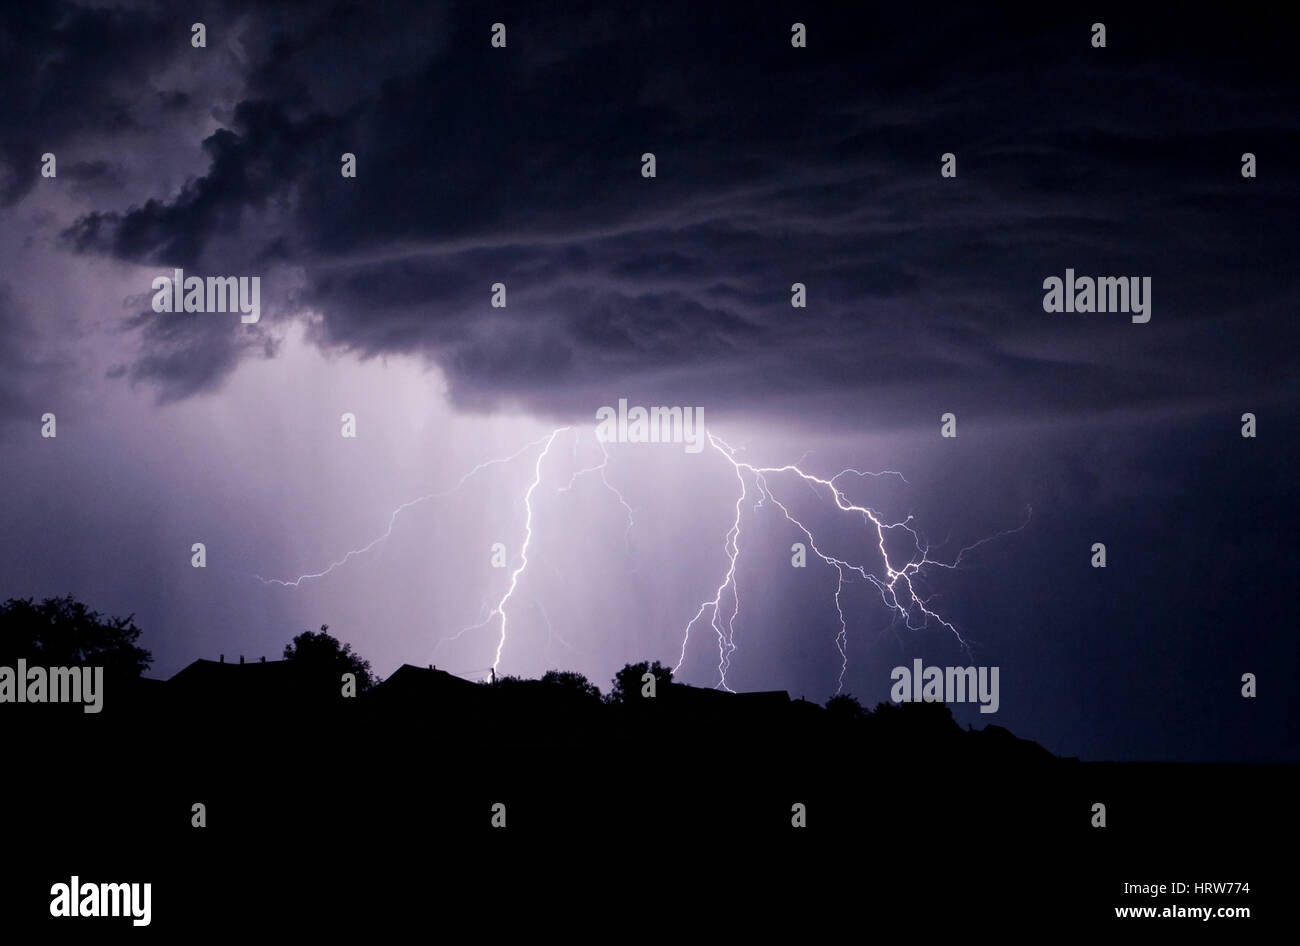 Powerful Lightning Storm In The Sky With Dark Clouds